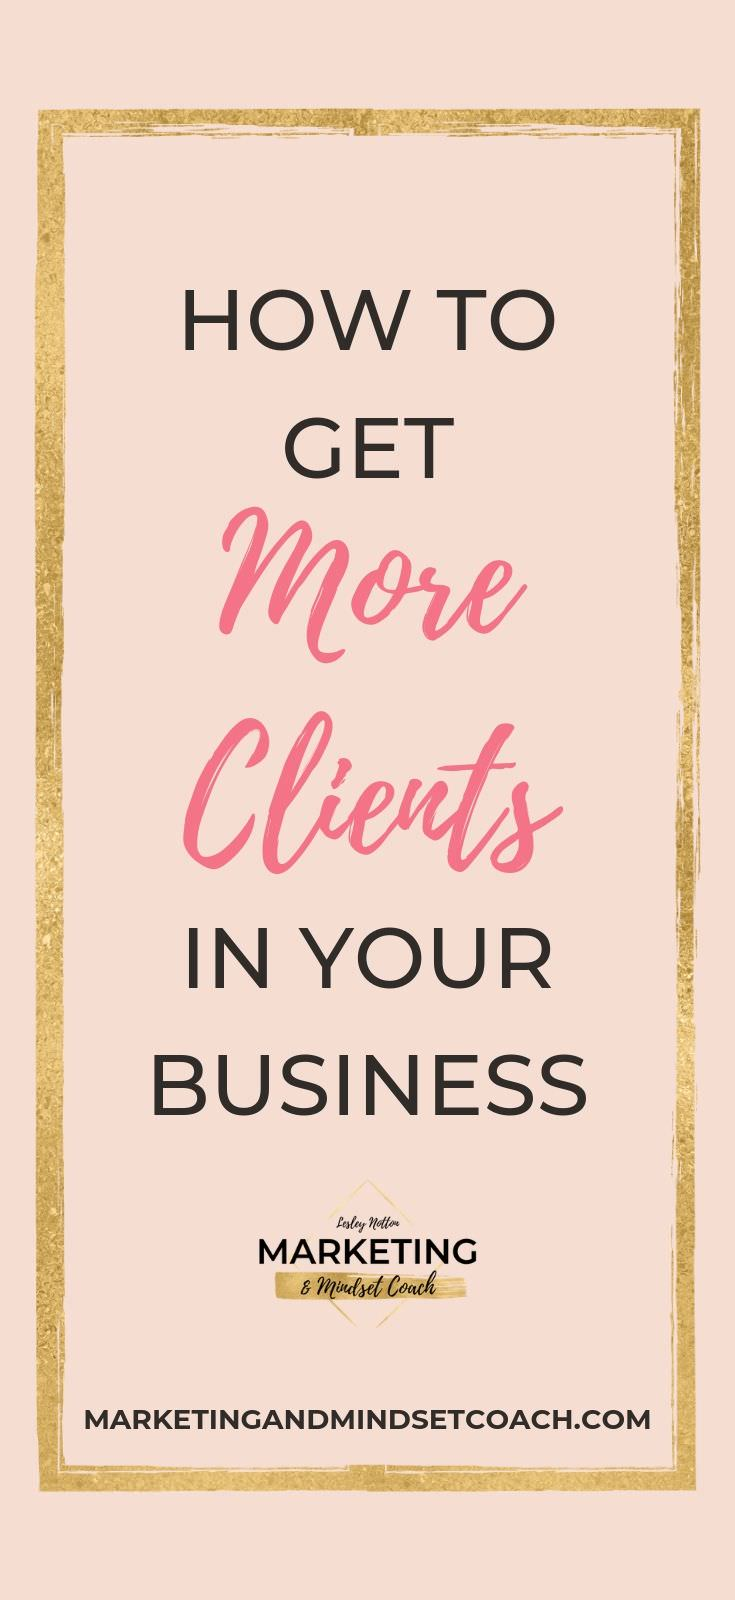 HOW TO GET CONSISTENT CLIENTS